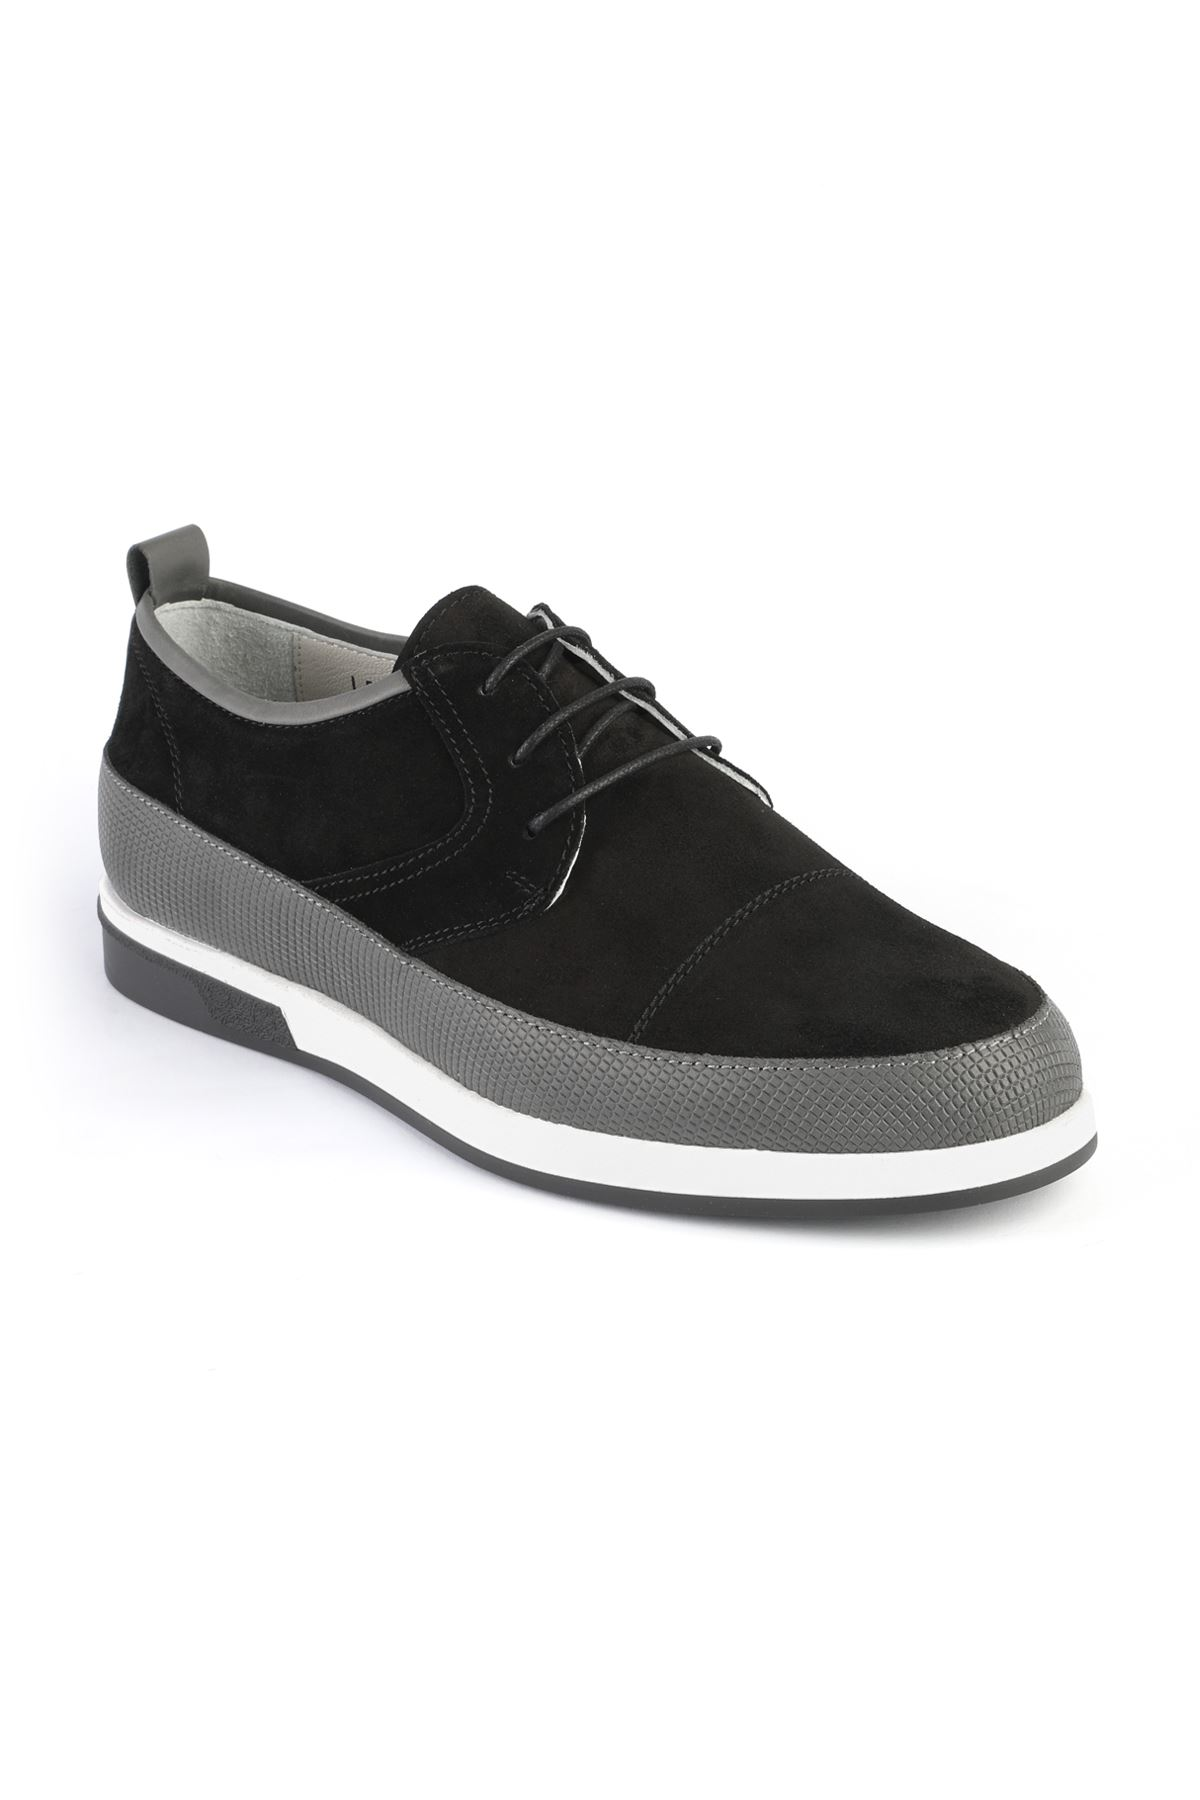 Libero 3367 Black Loafer Shoes